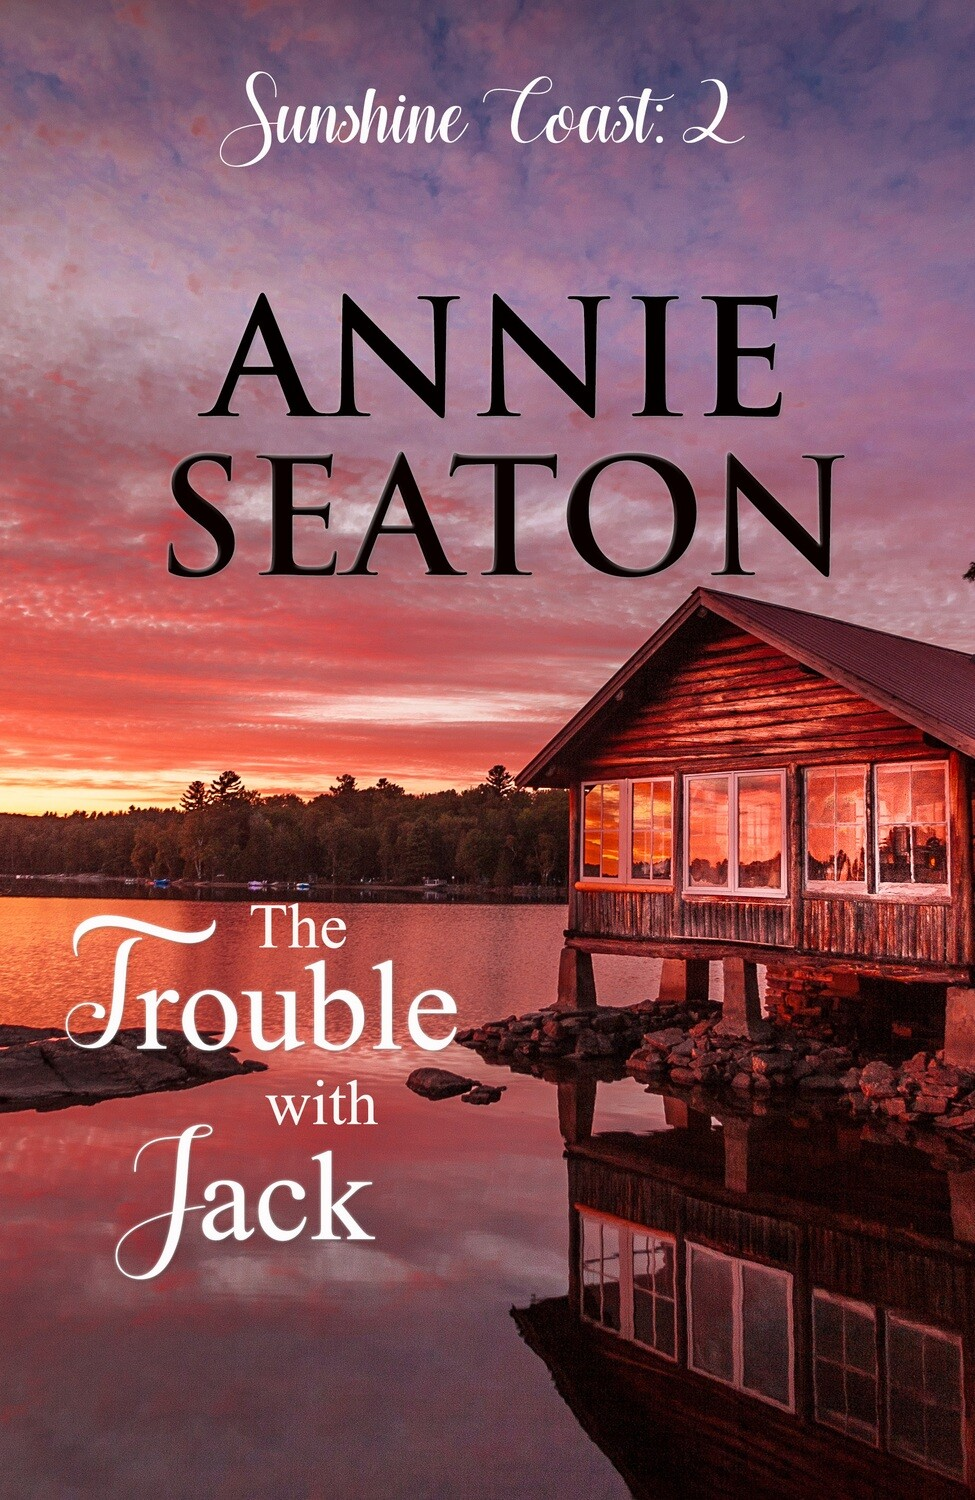 Sunshine Coast Book 2 The Trouble with Jack - Available now